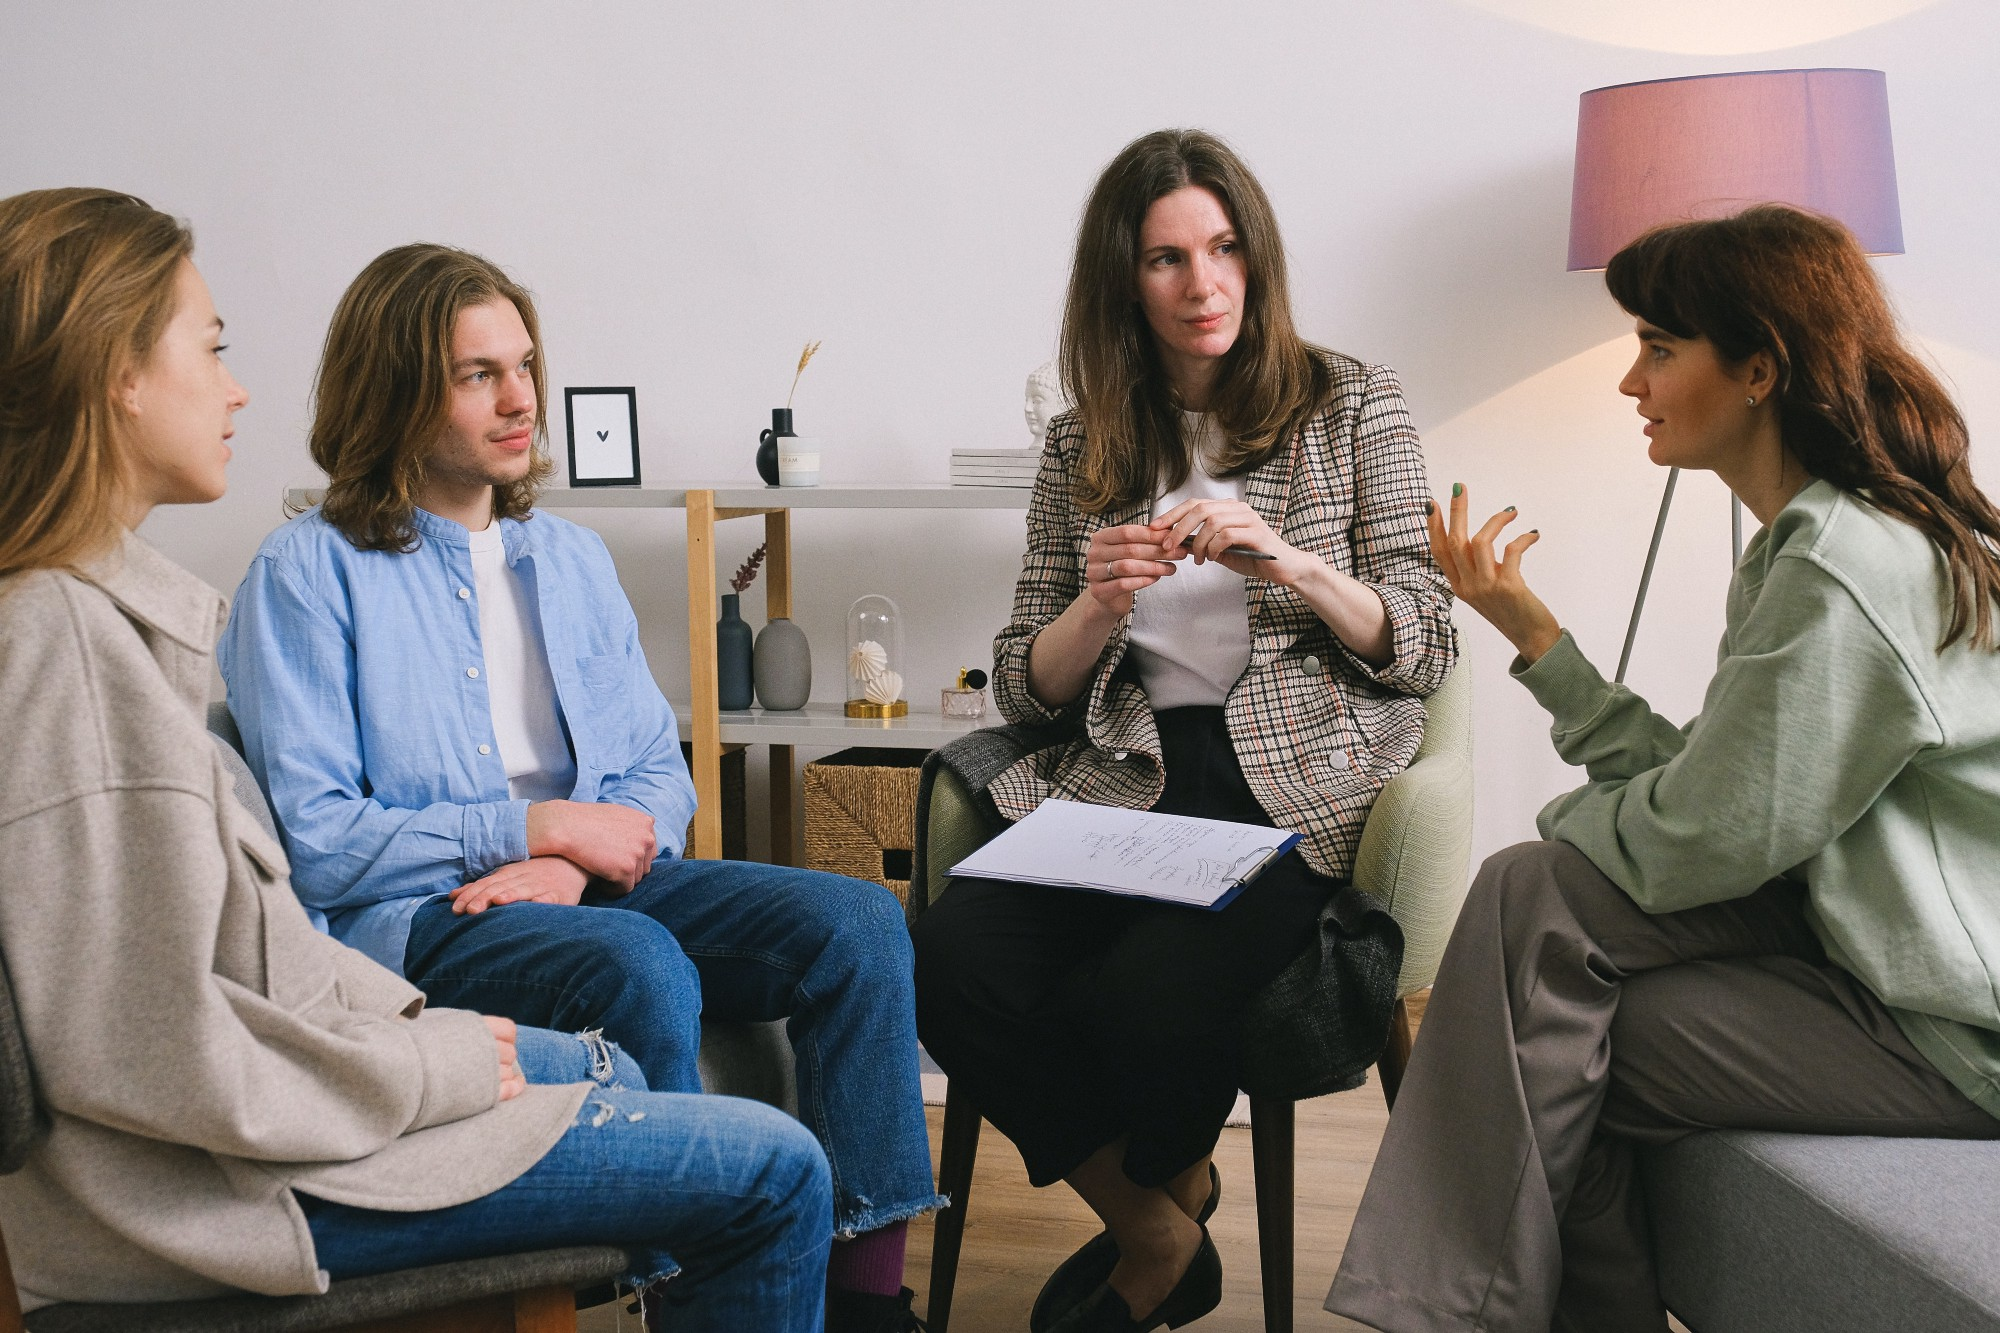 Woman explaining herself to two other women and one man.